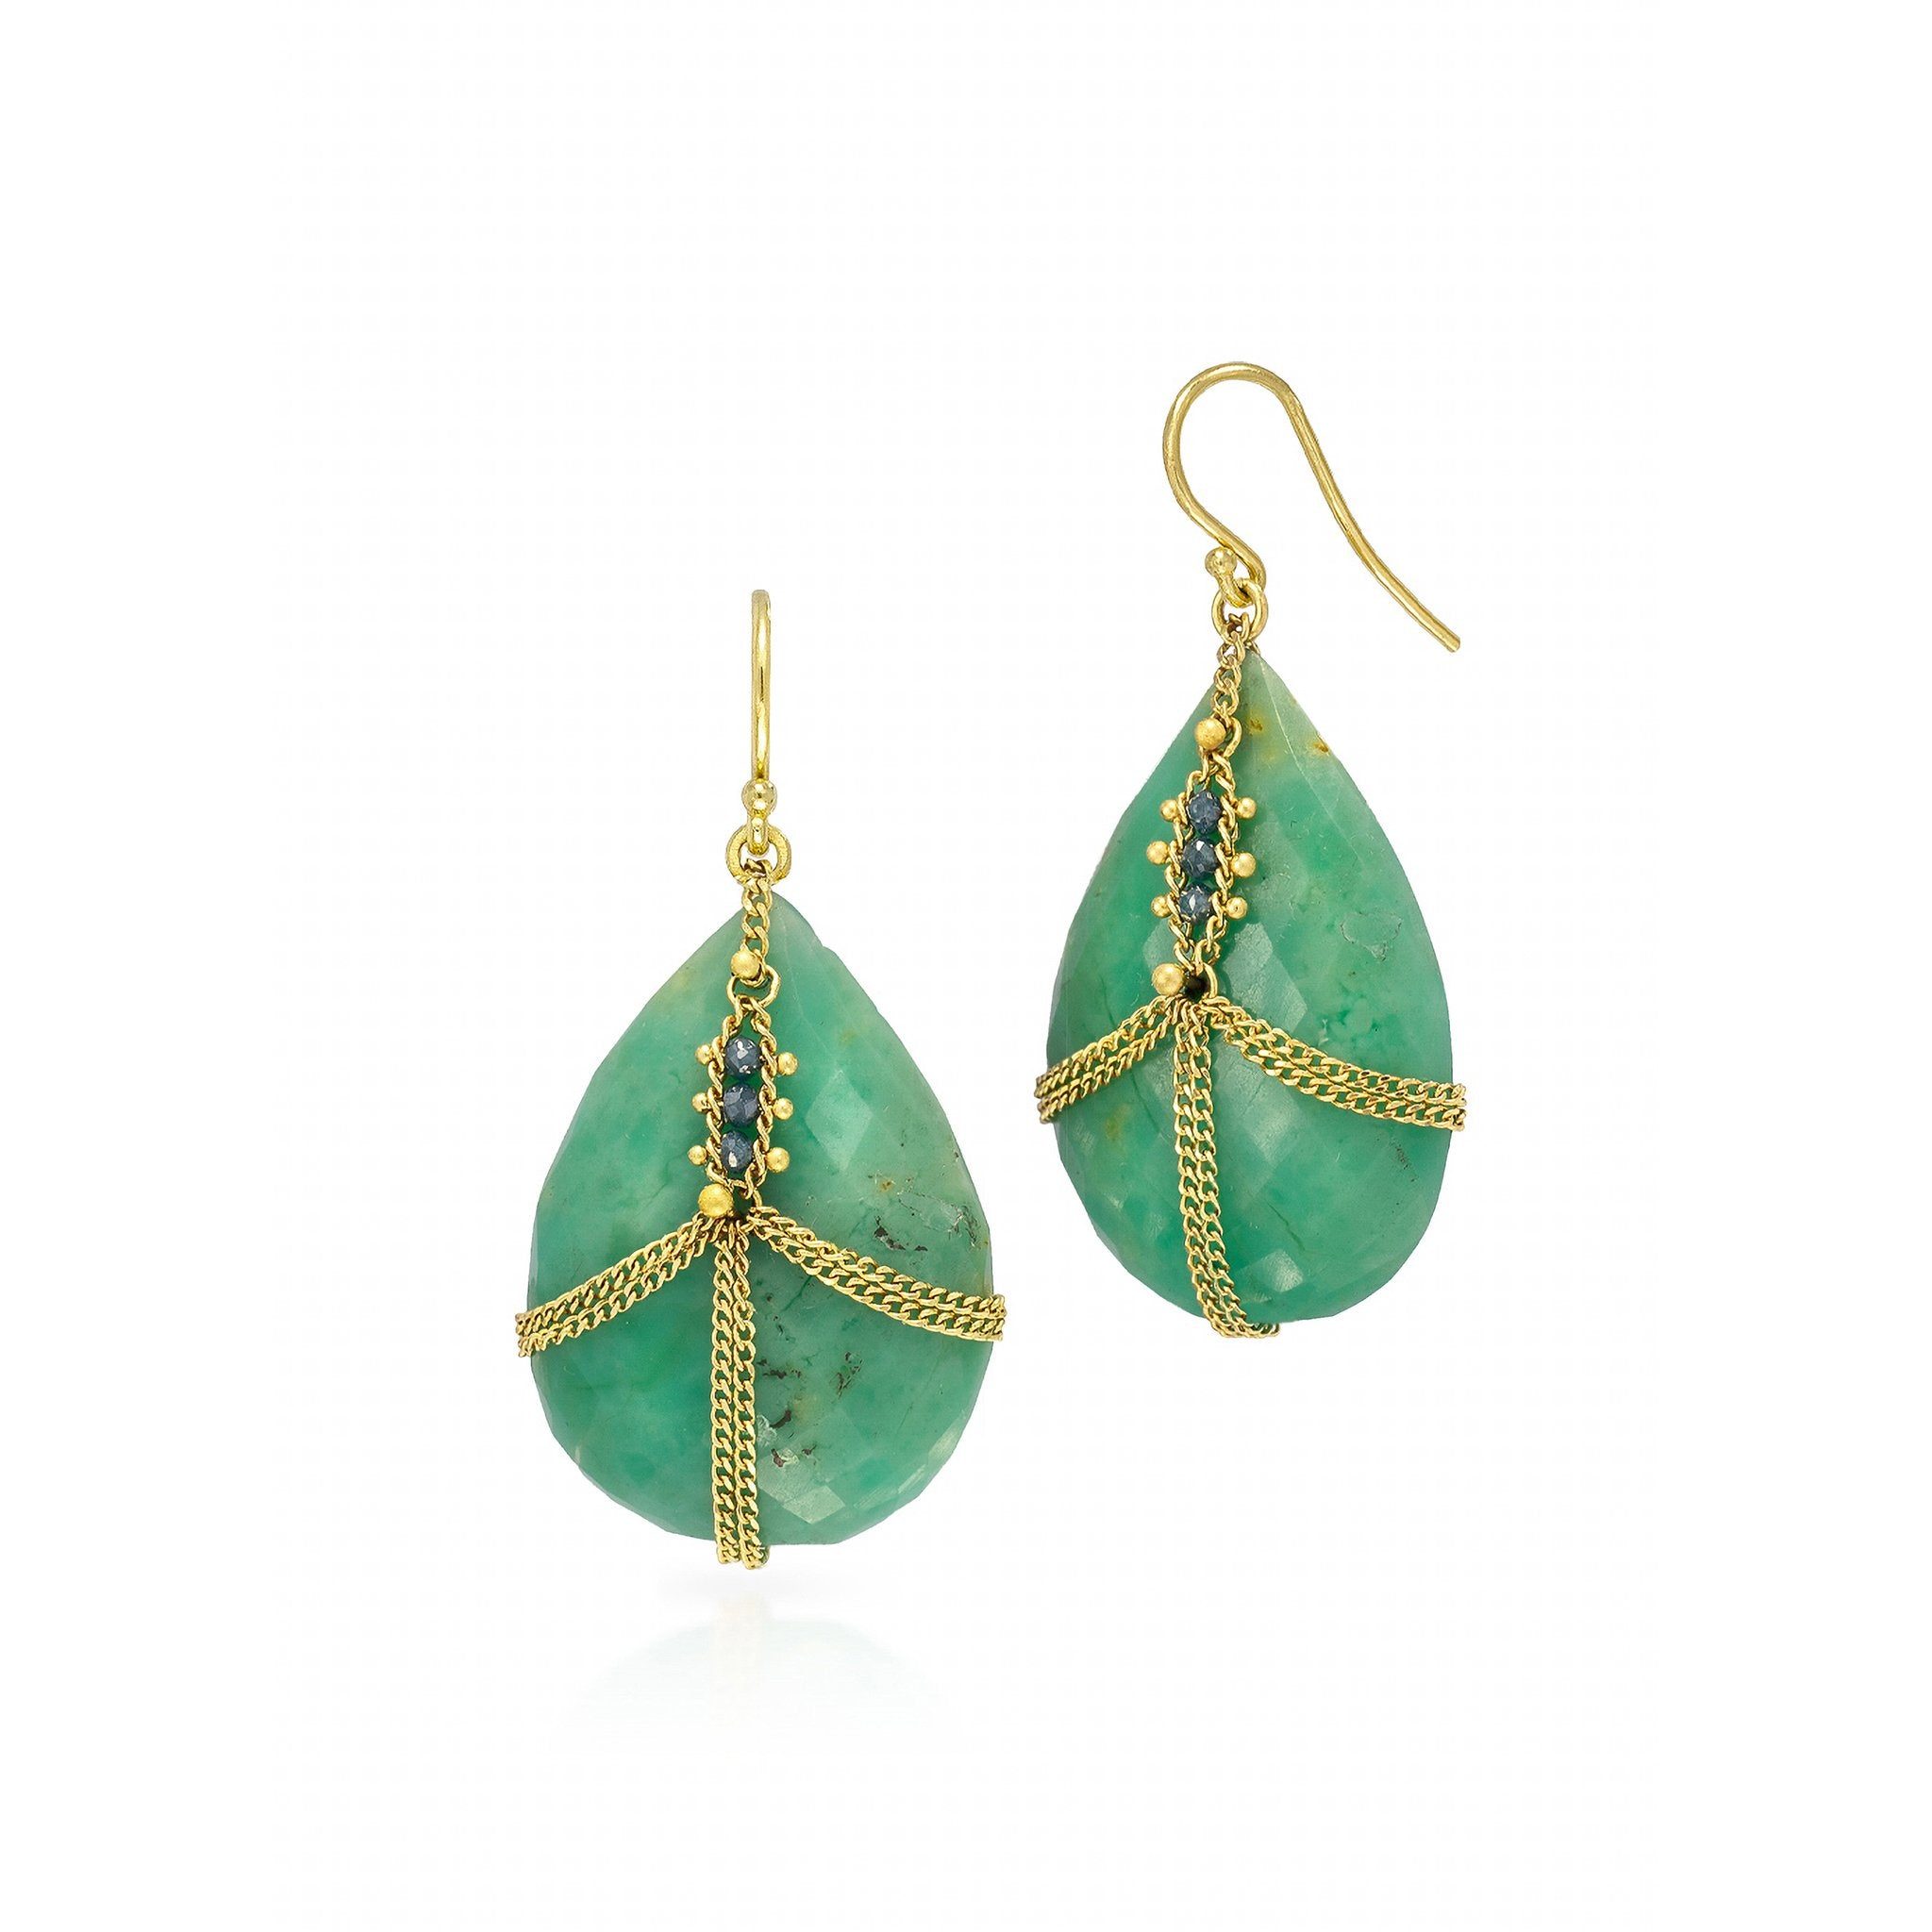 Amali-Draped Chrysoprase with Blue Diamonds